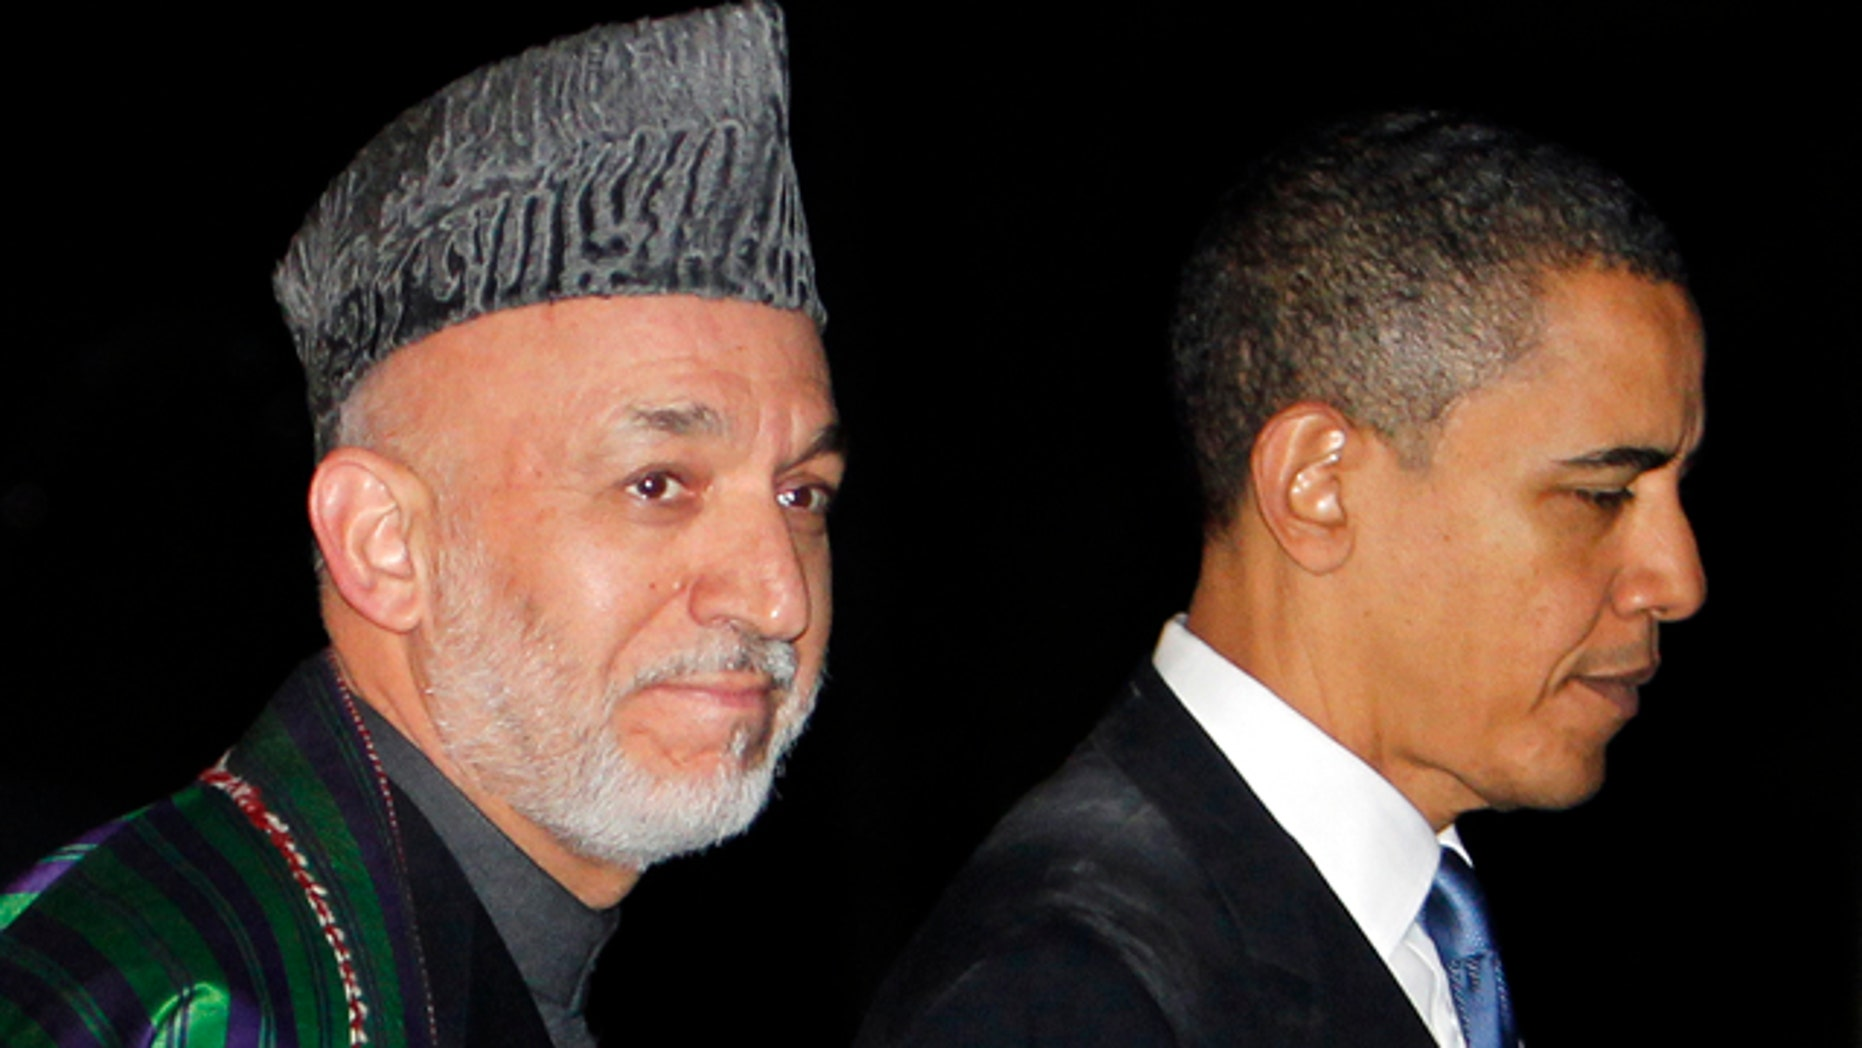 March 28: President Obama walks with Afghan President Hamid Karzai at the presidential palace in Kabul, Afghanistan.